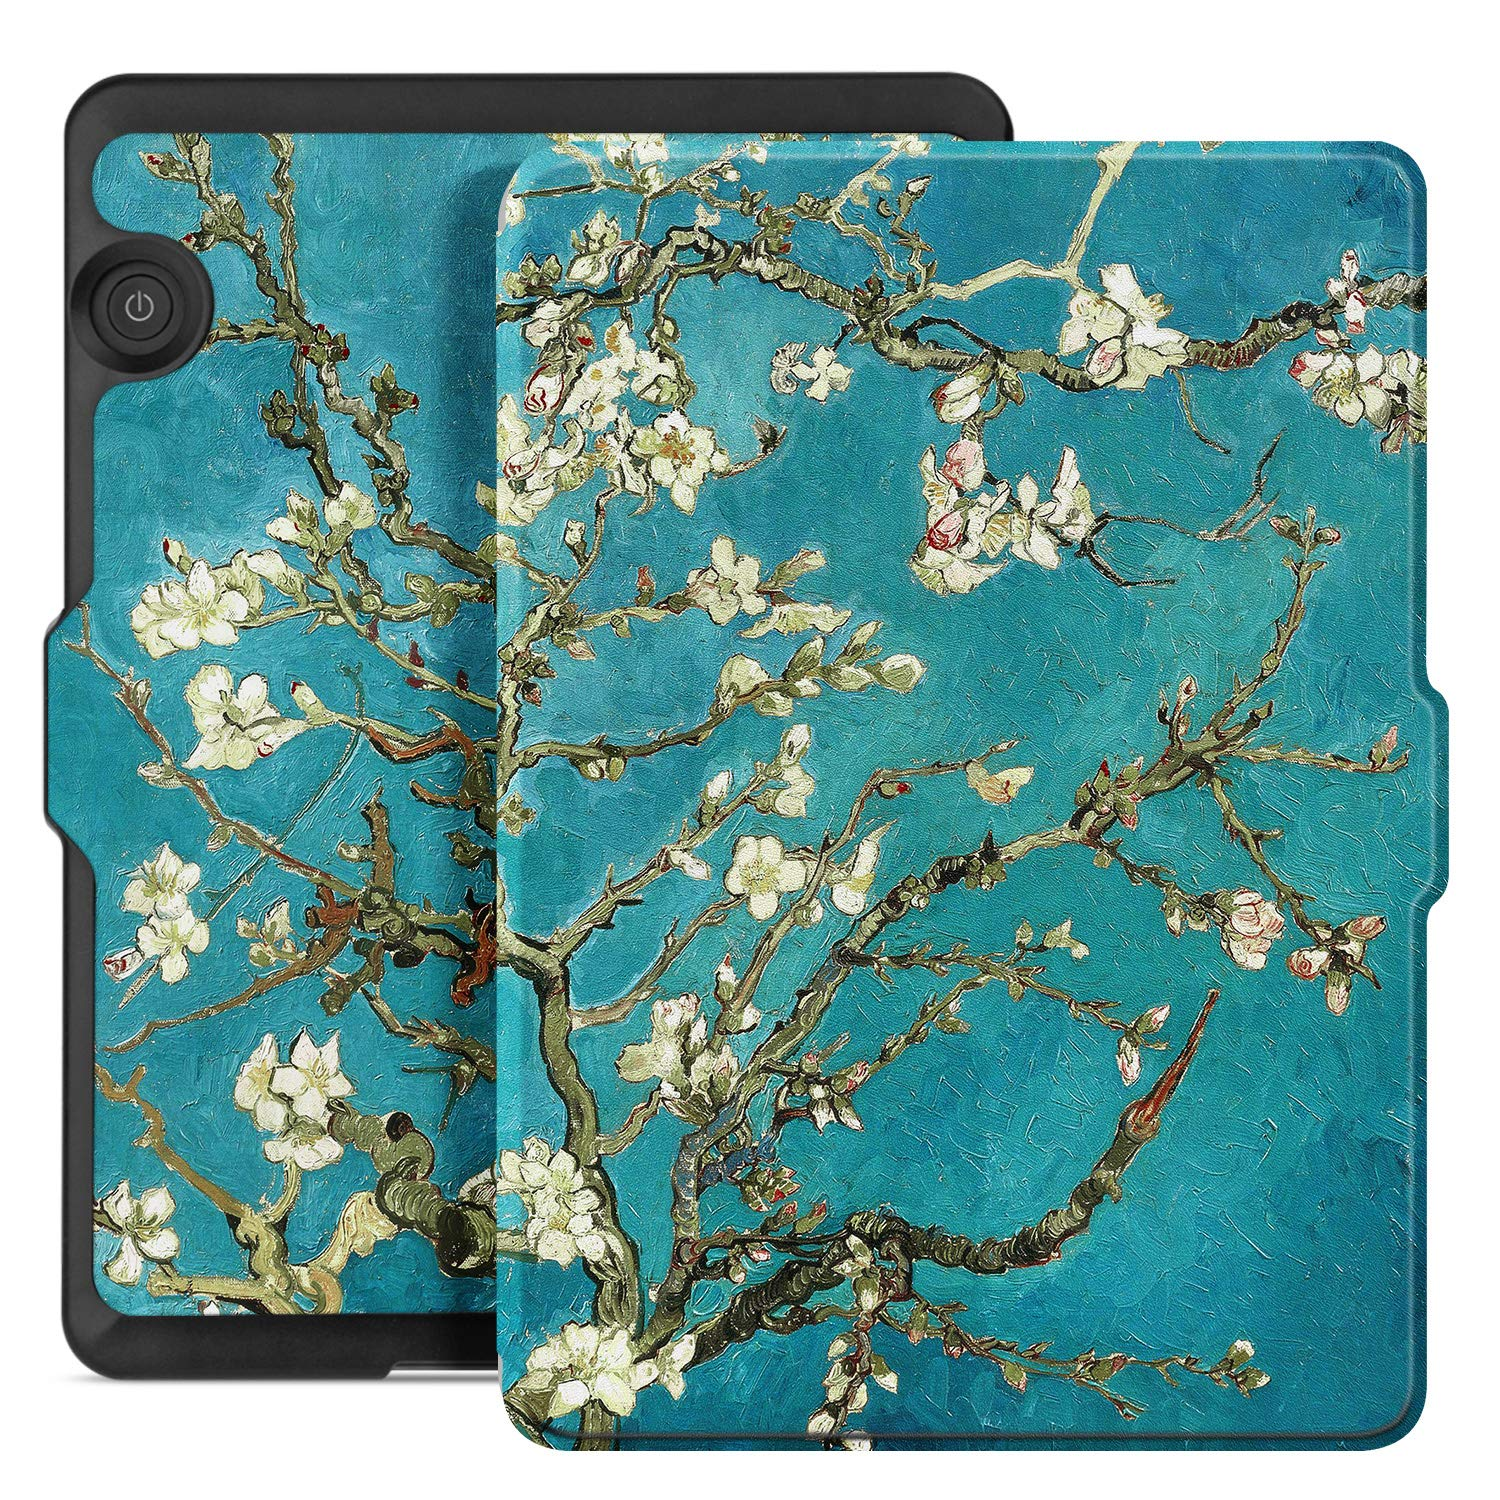 Ayotu Case for Kindle Voyage E-reader Auto Wake and Sleep Smart Protective Cover, For Amazon 2014 Kindle Voyage Case Painting Series KV-09 The Apricot Flower